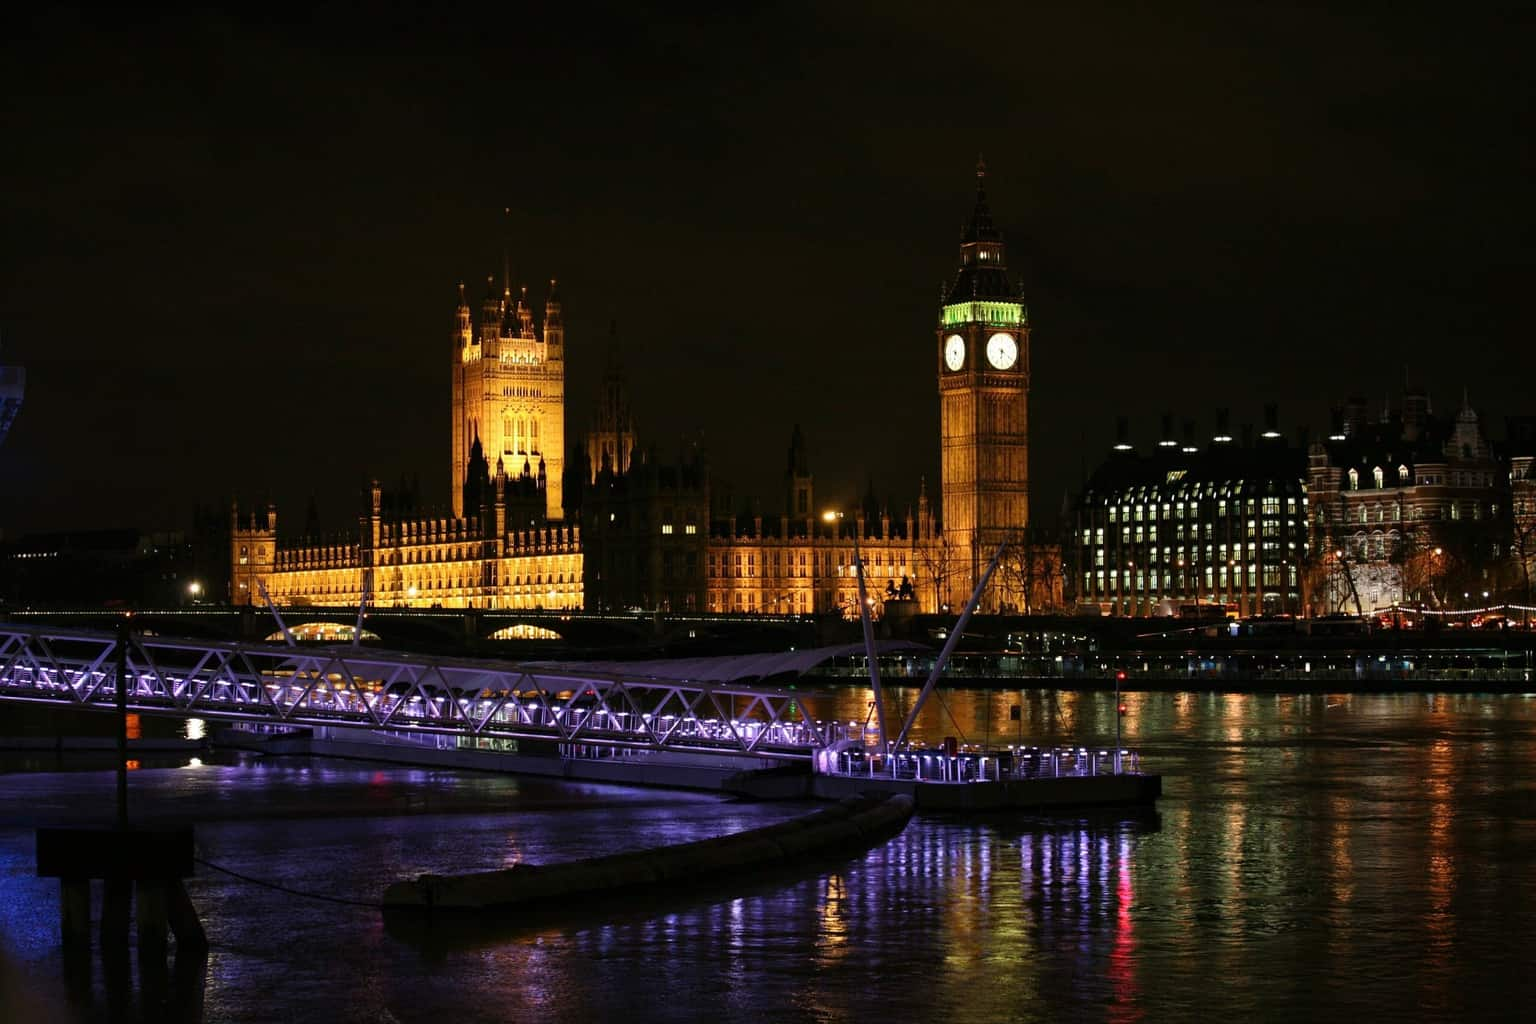 London skyline showing Houses of Parliament and Big Ben